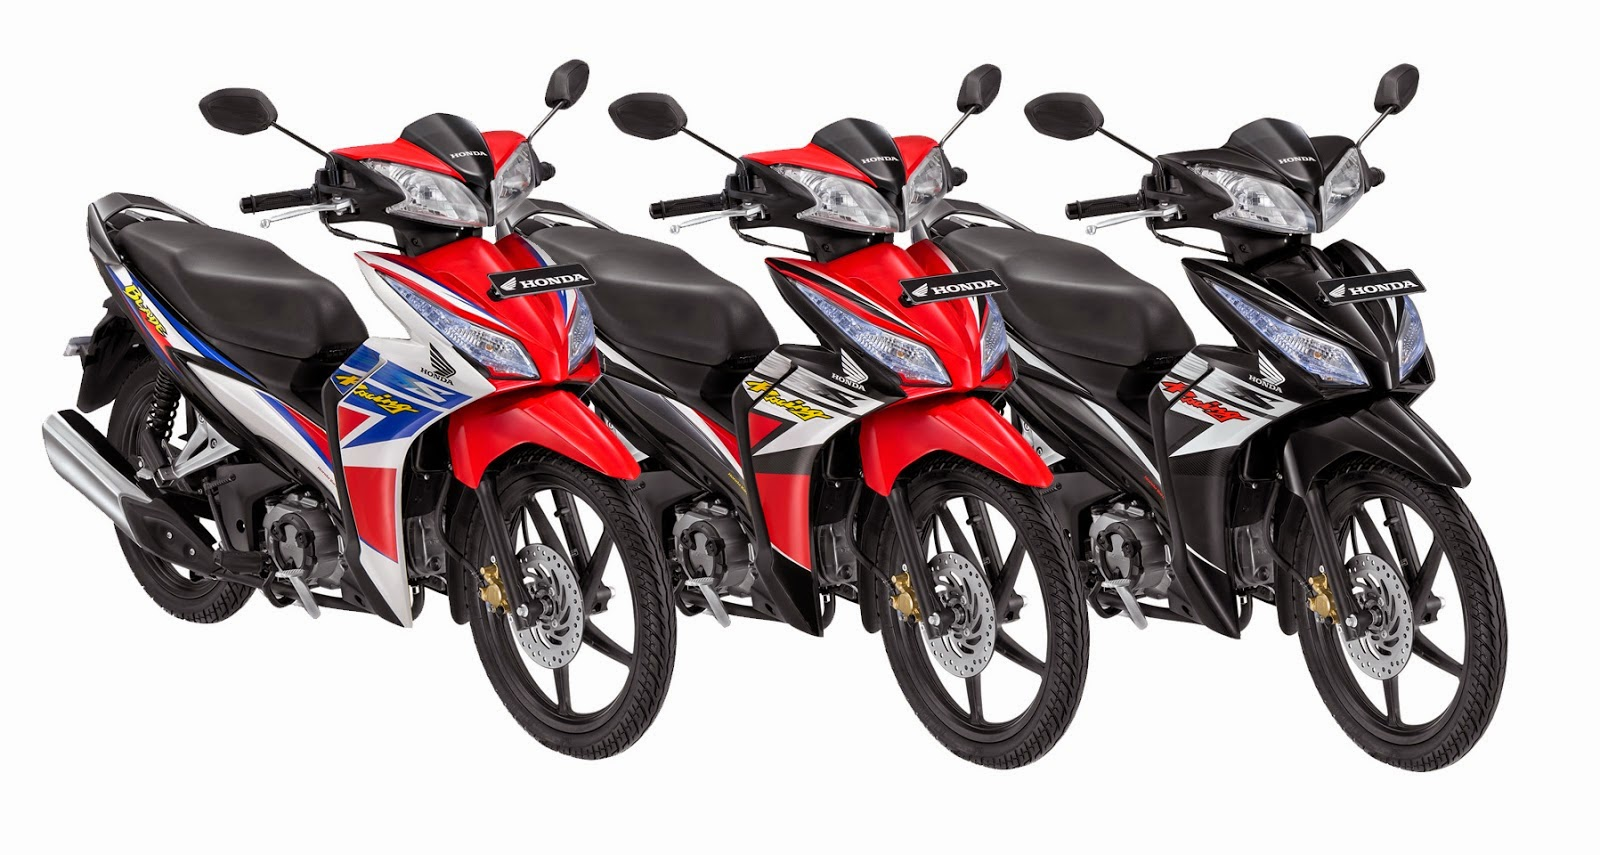 Modifikasi Mesin Yamaha Rx King